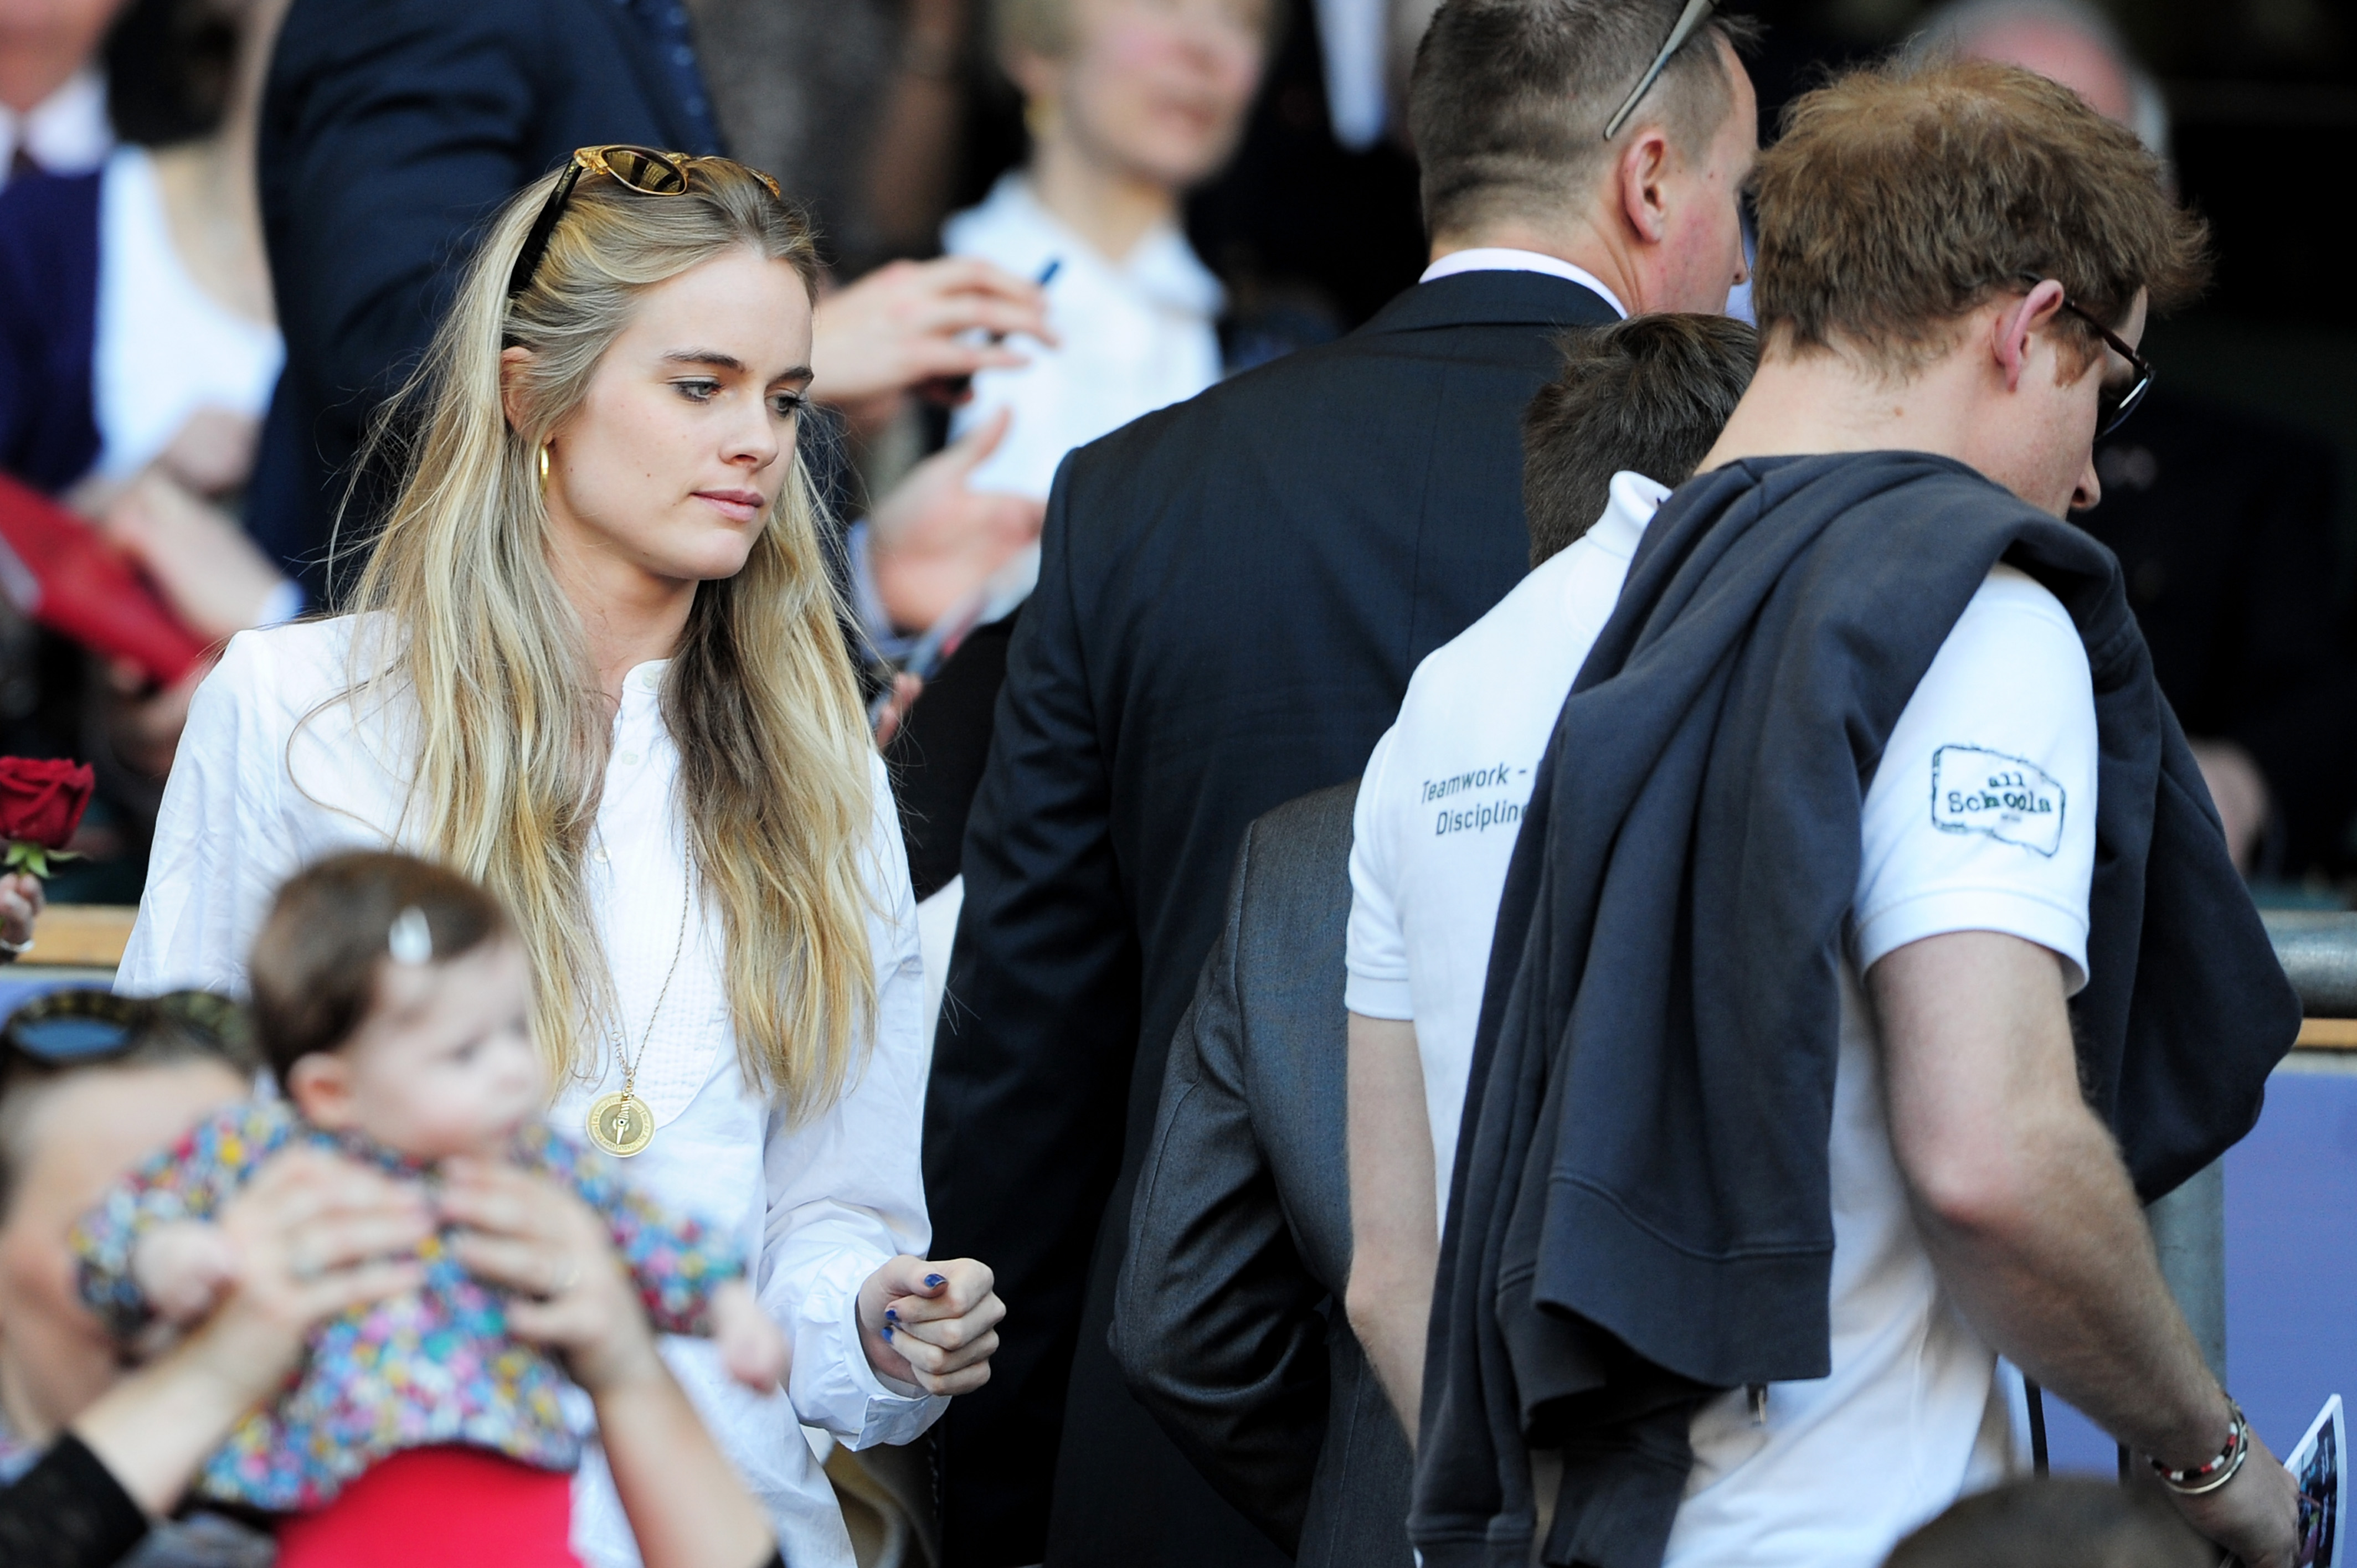 LONDON, ENGLAND - MARCH 09: Prince Harry (R) and Cressida Bonas (L) take their seats during the RBS Six Nations match between England and Wales at Twickenham Stadium on March 9, 2014 in London, England. (Photo by Shaun Botterill/Getty Images)